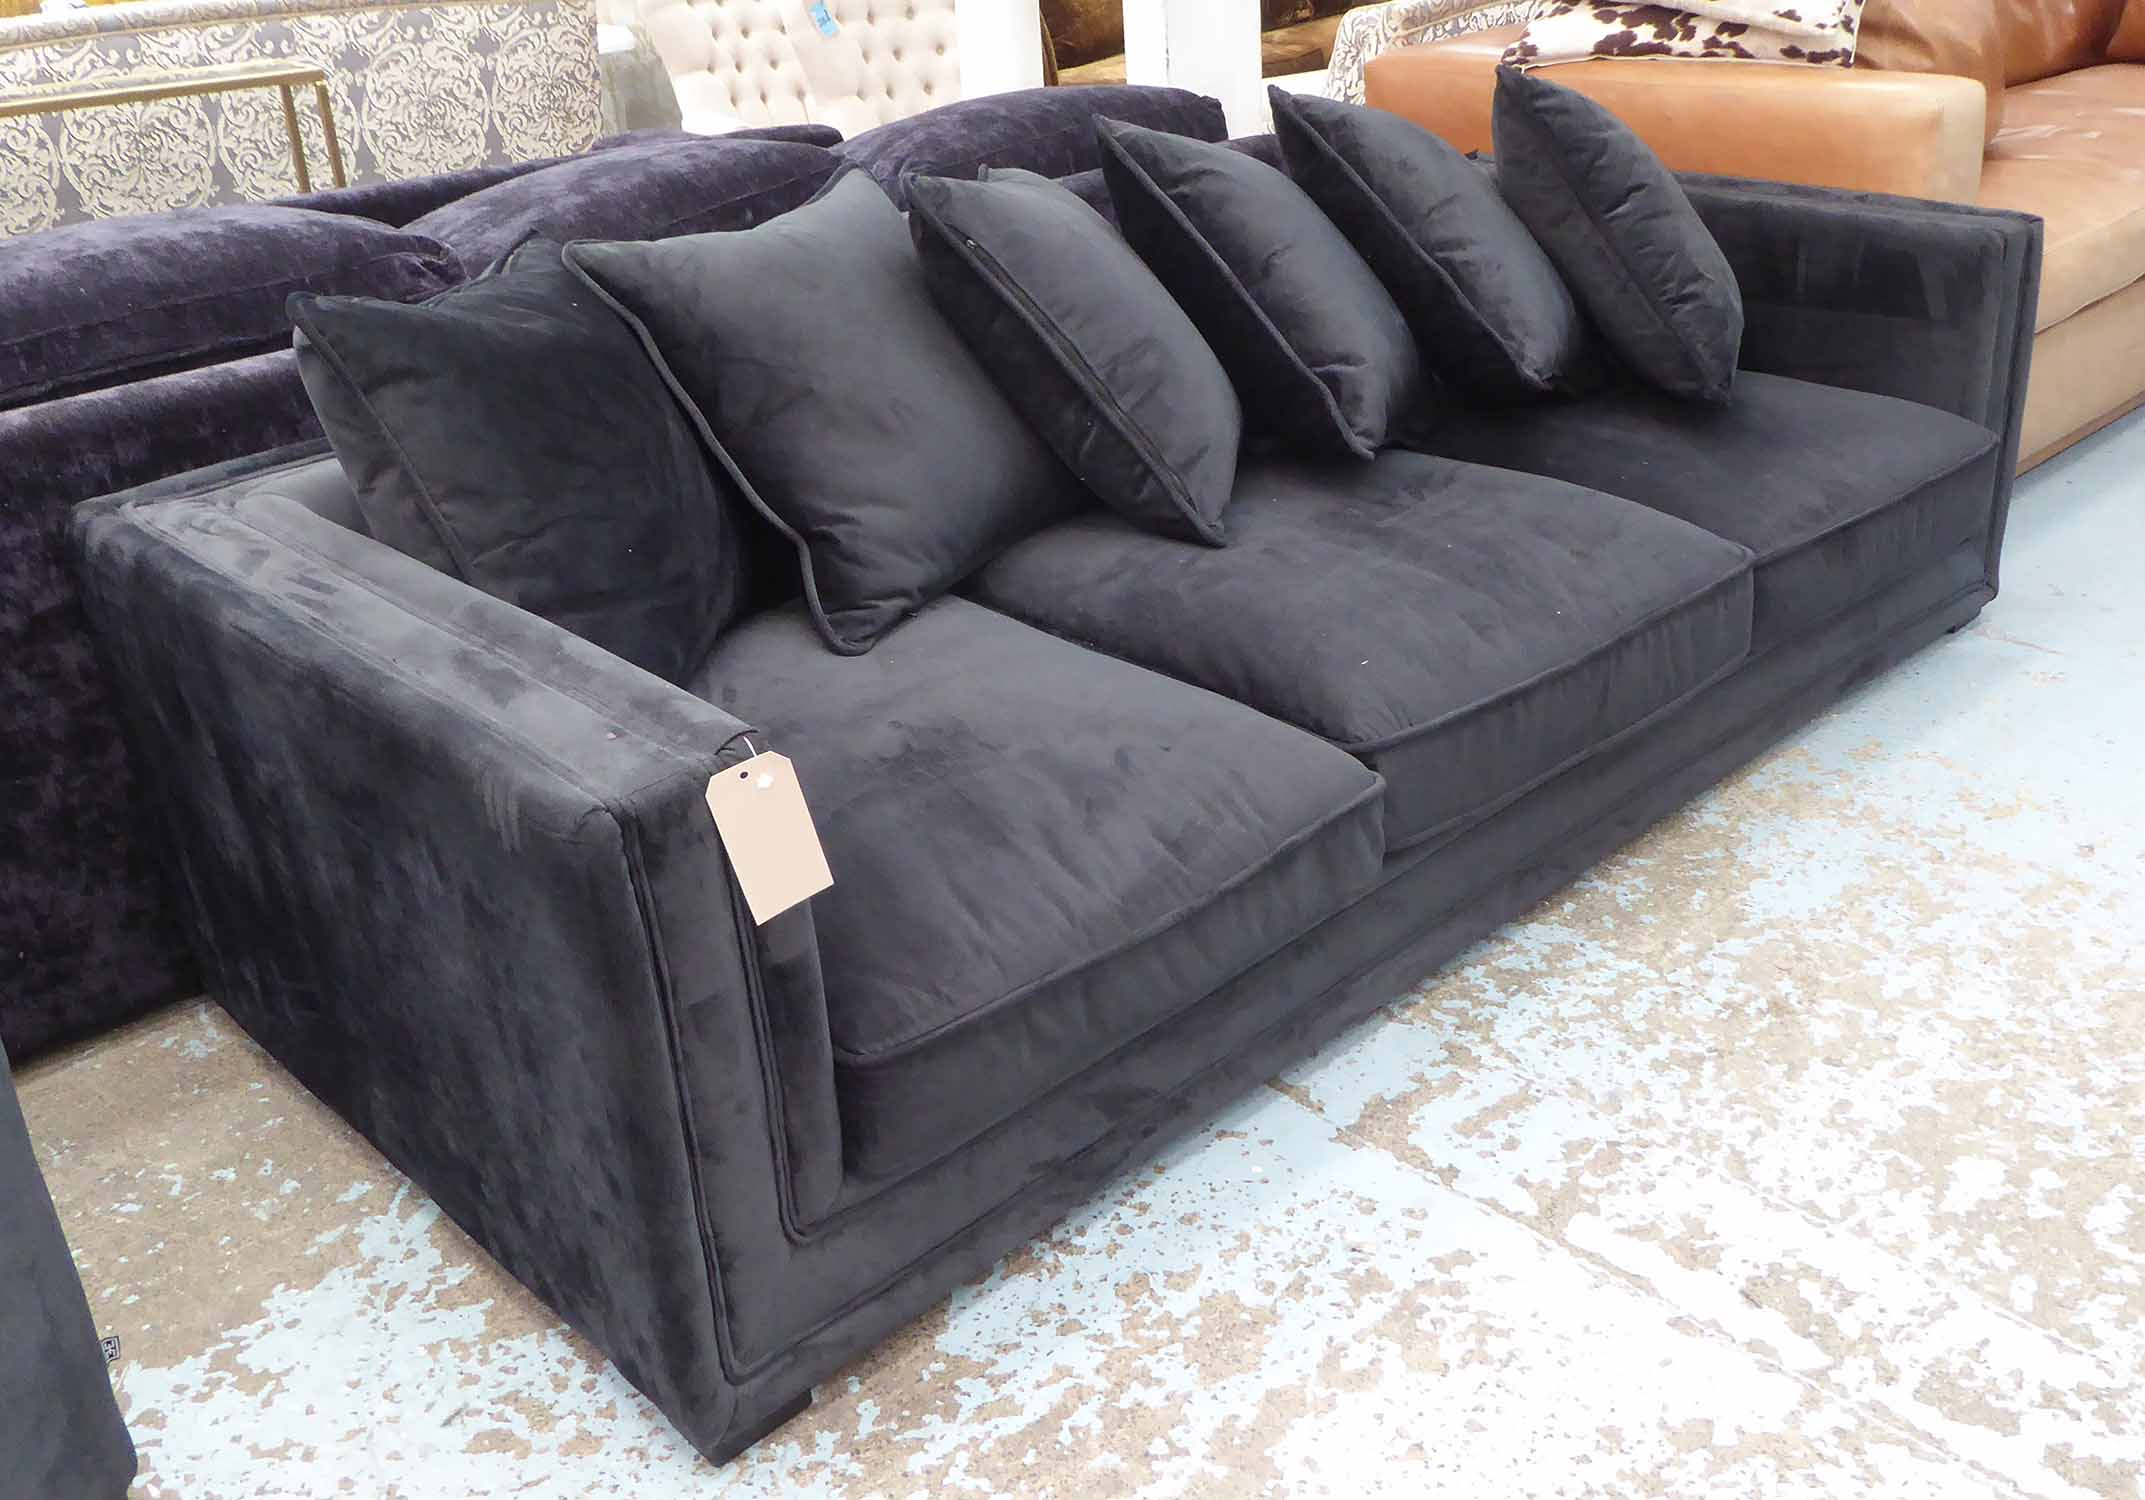 Lot 49 - EICHOLTZ SOFA, in black upholstery with six black scatter cushions, 240cm x 103cm x 64cm H.